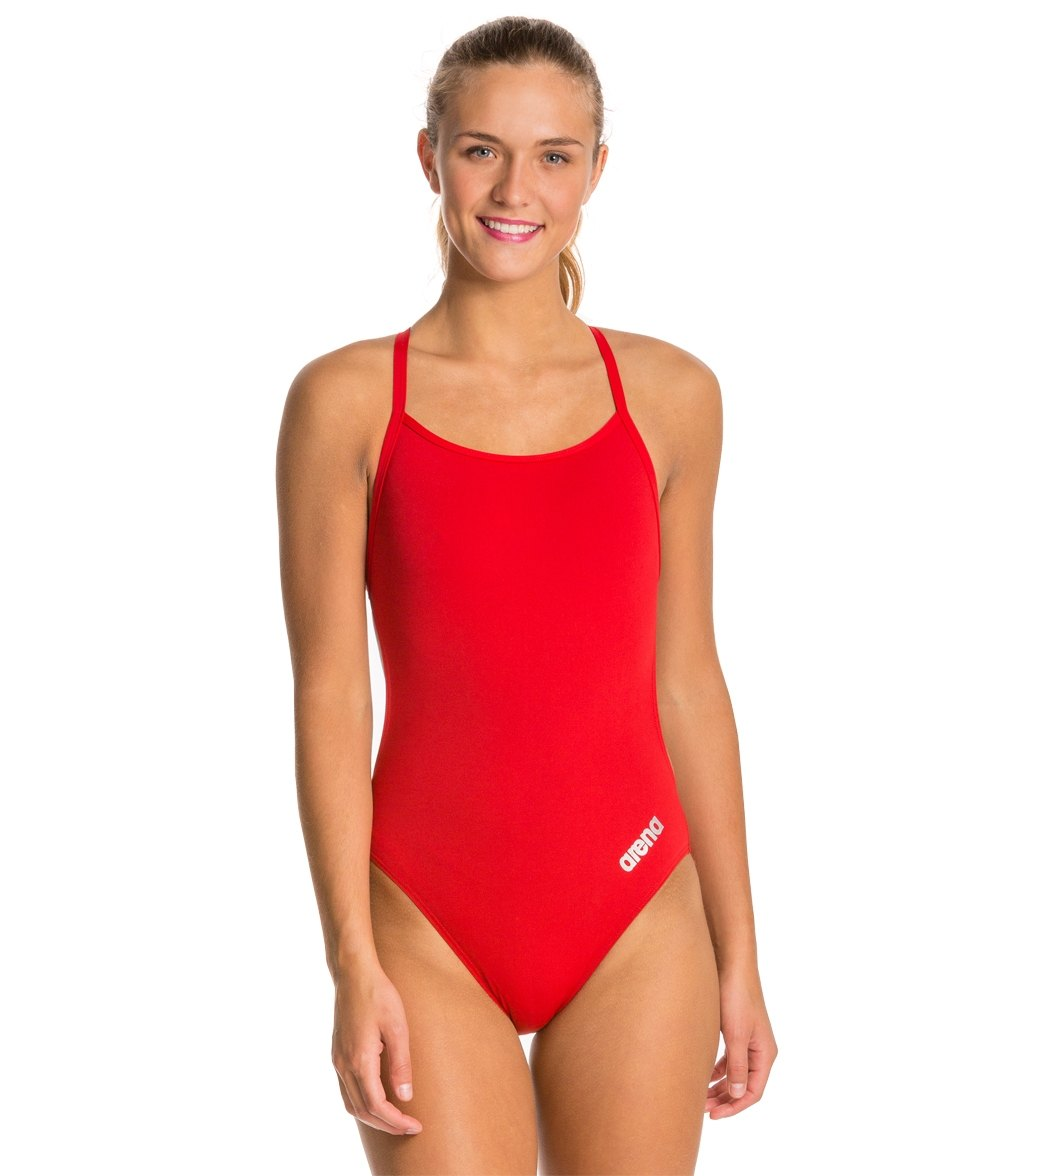 b36552982969f Arena Women's Mast MaxLife Thin Strap Open Racer Back One Piece Swimsuit at  SwimOutlet.com - Free Shipping